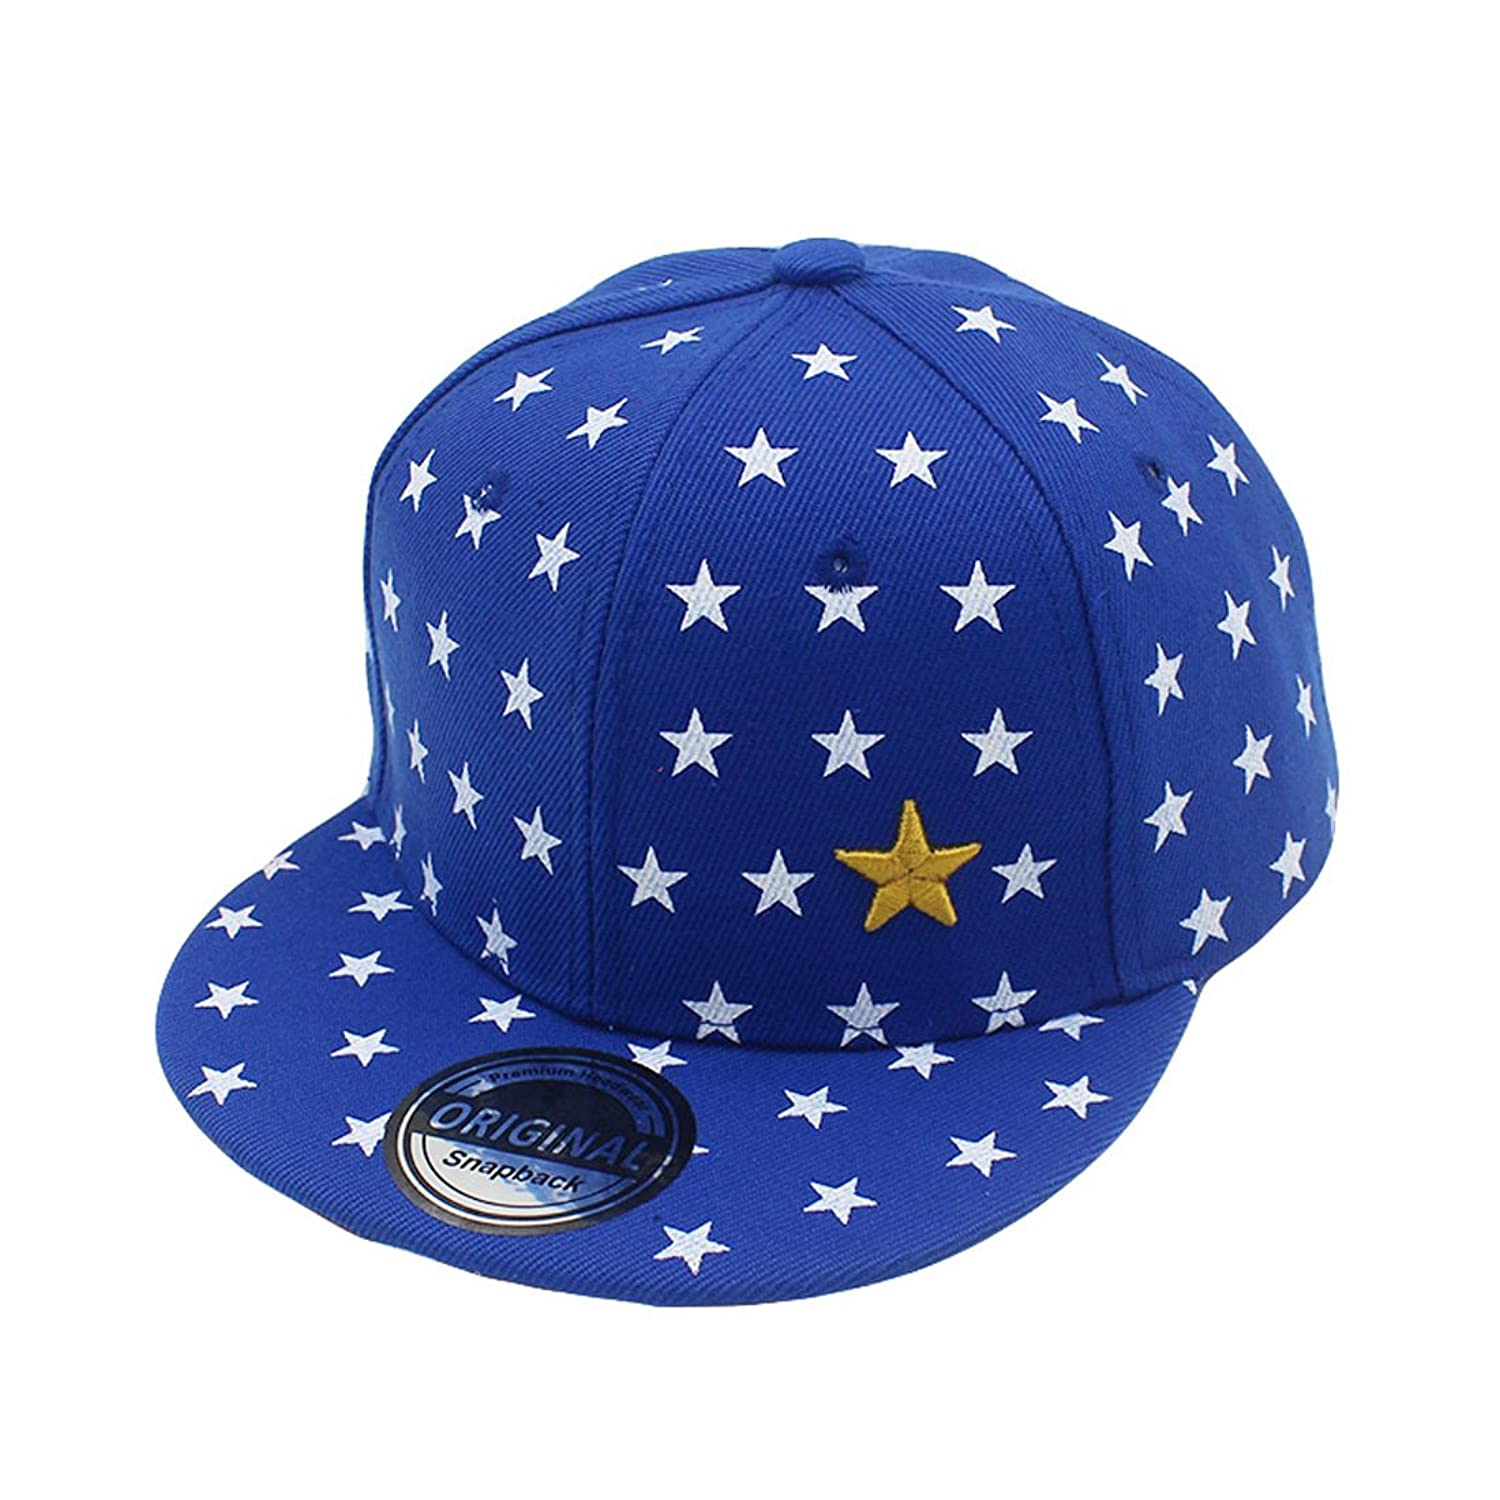 Boys Girls Baseball Cap Five-pointed Star Design Outdoor Sports Hat